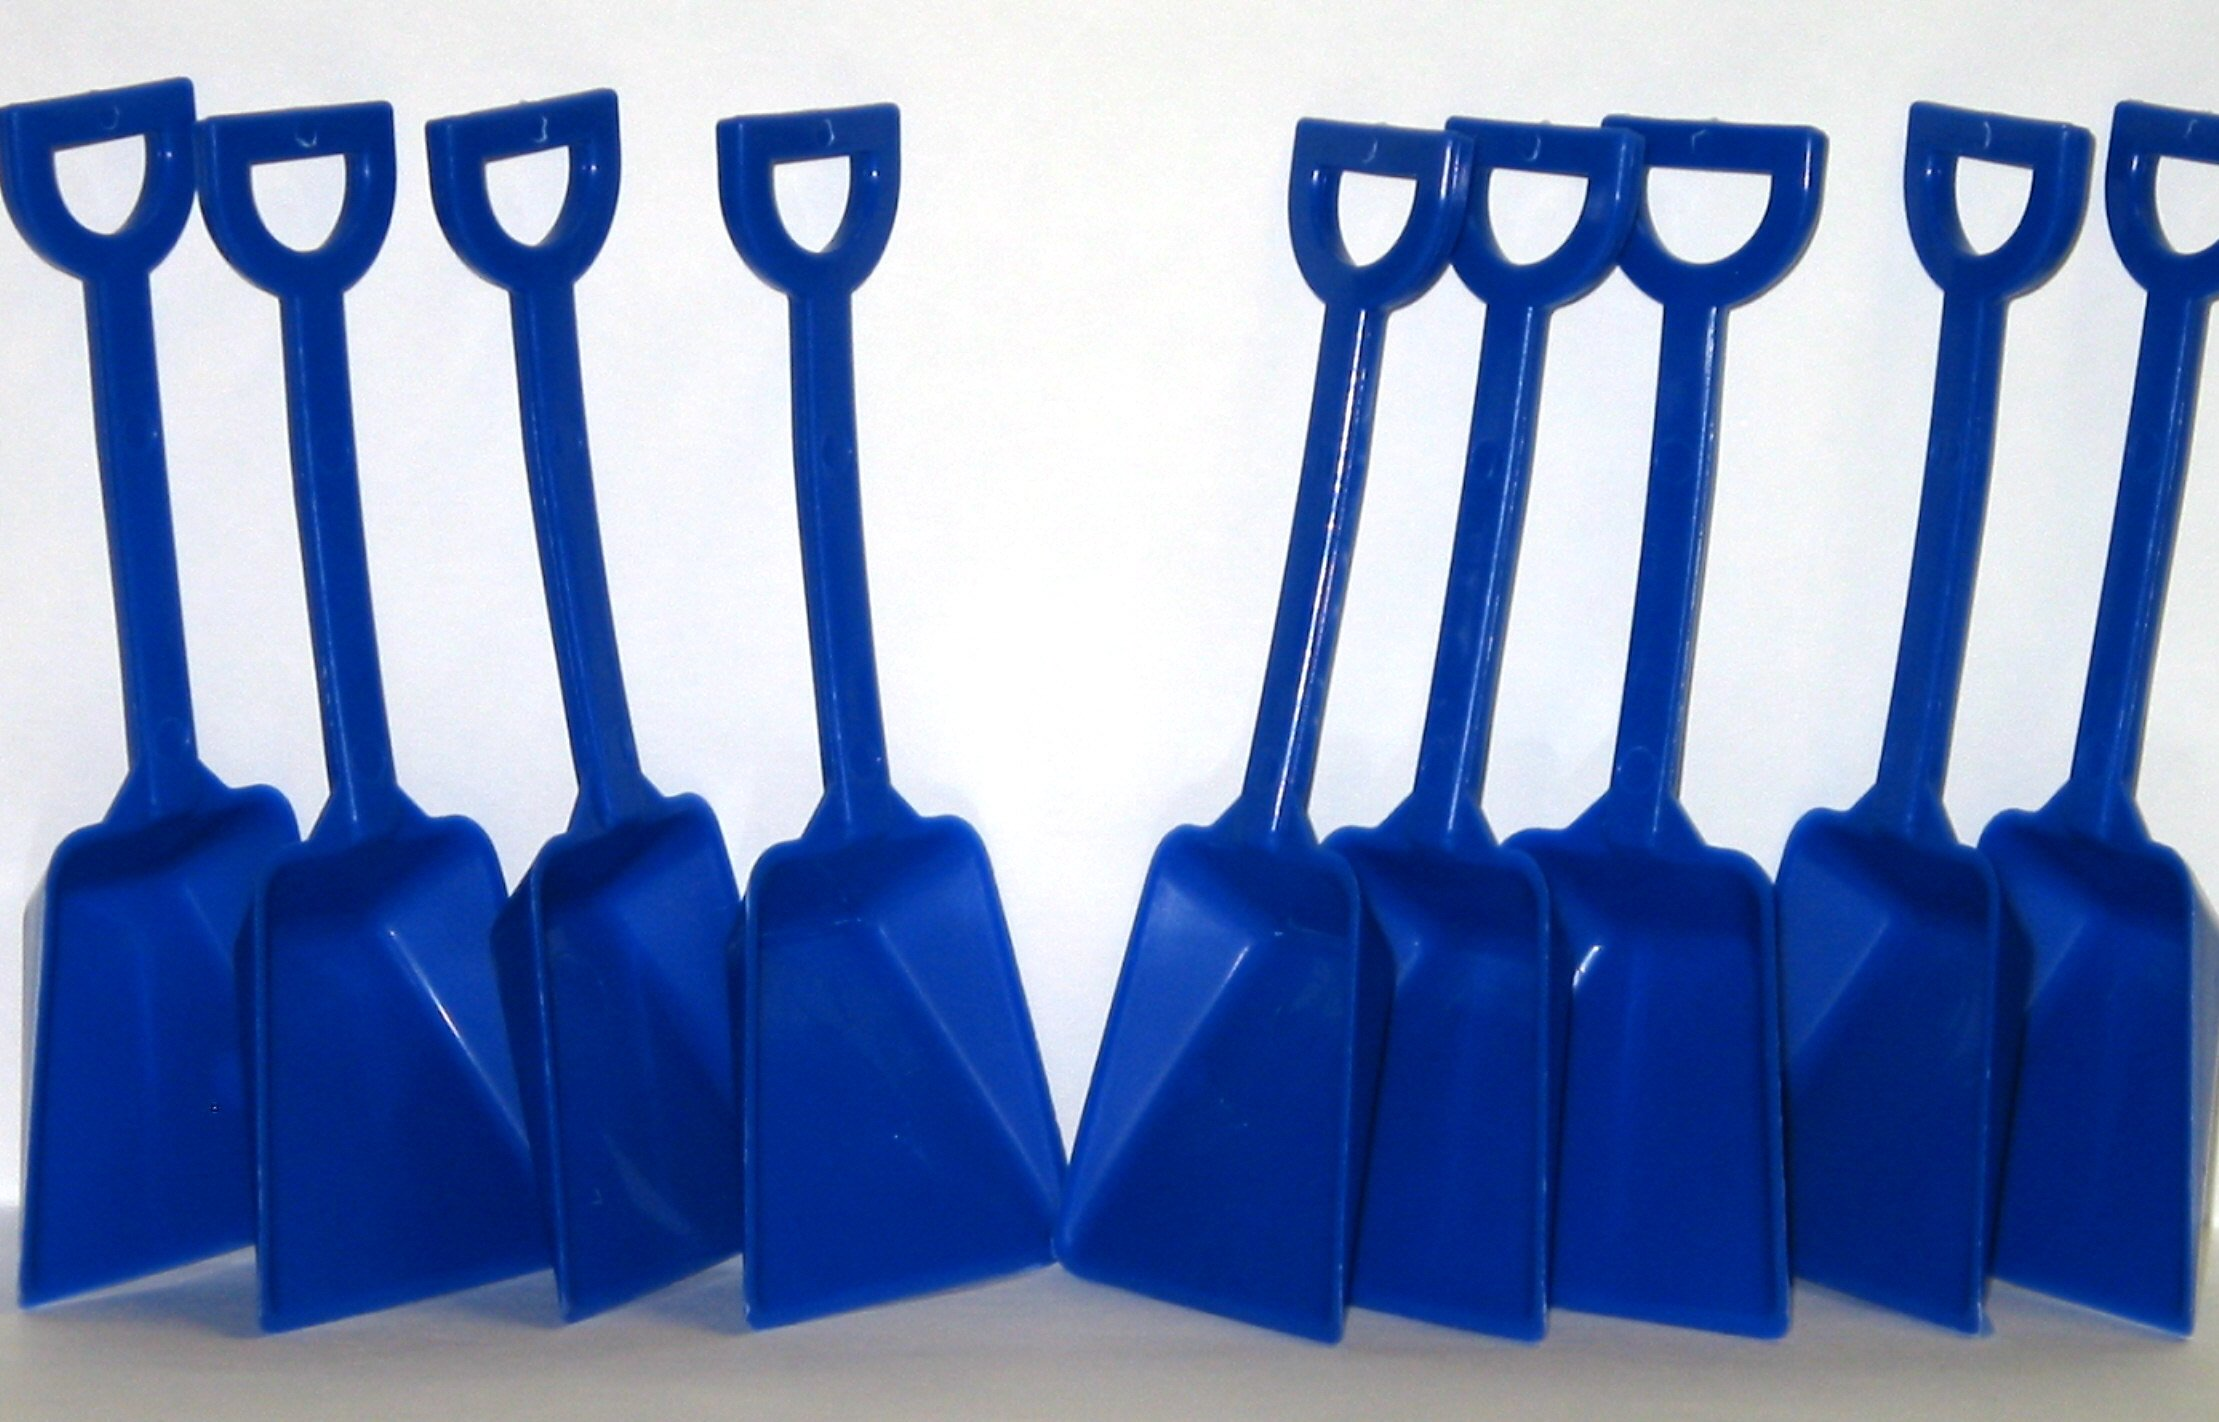 Small Toy Plastic Shovels Blue, 24 Pack, 7 Inches Tall, 24 I Dig You Stickers